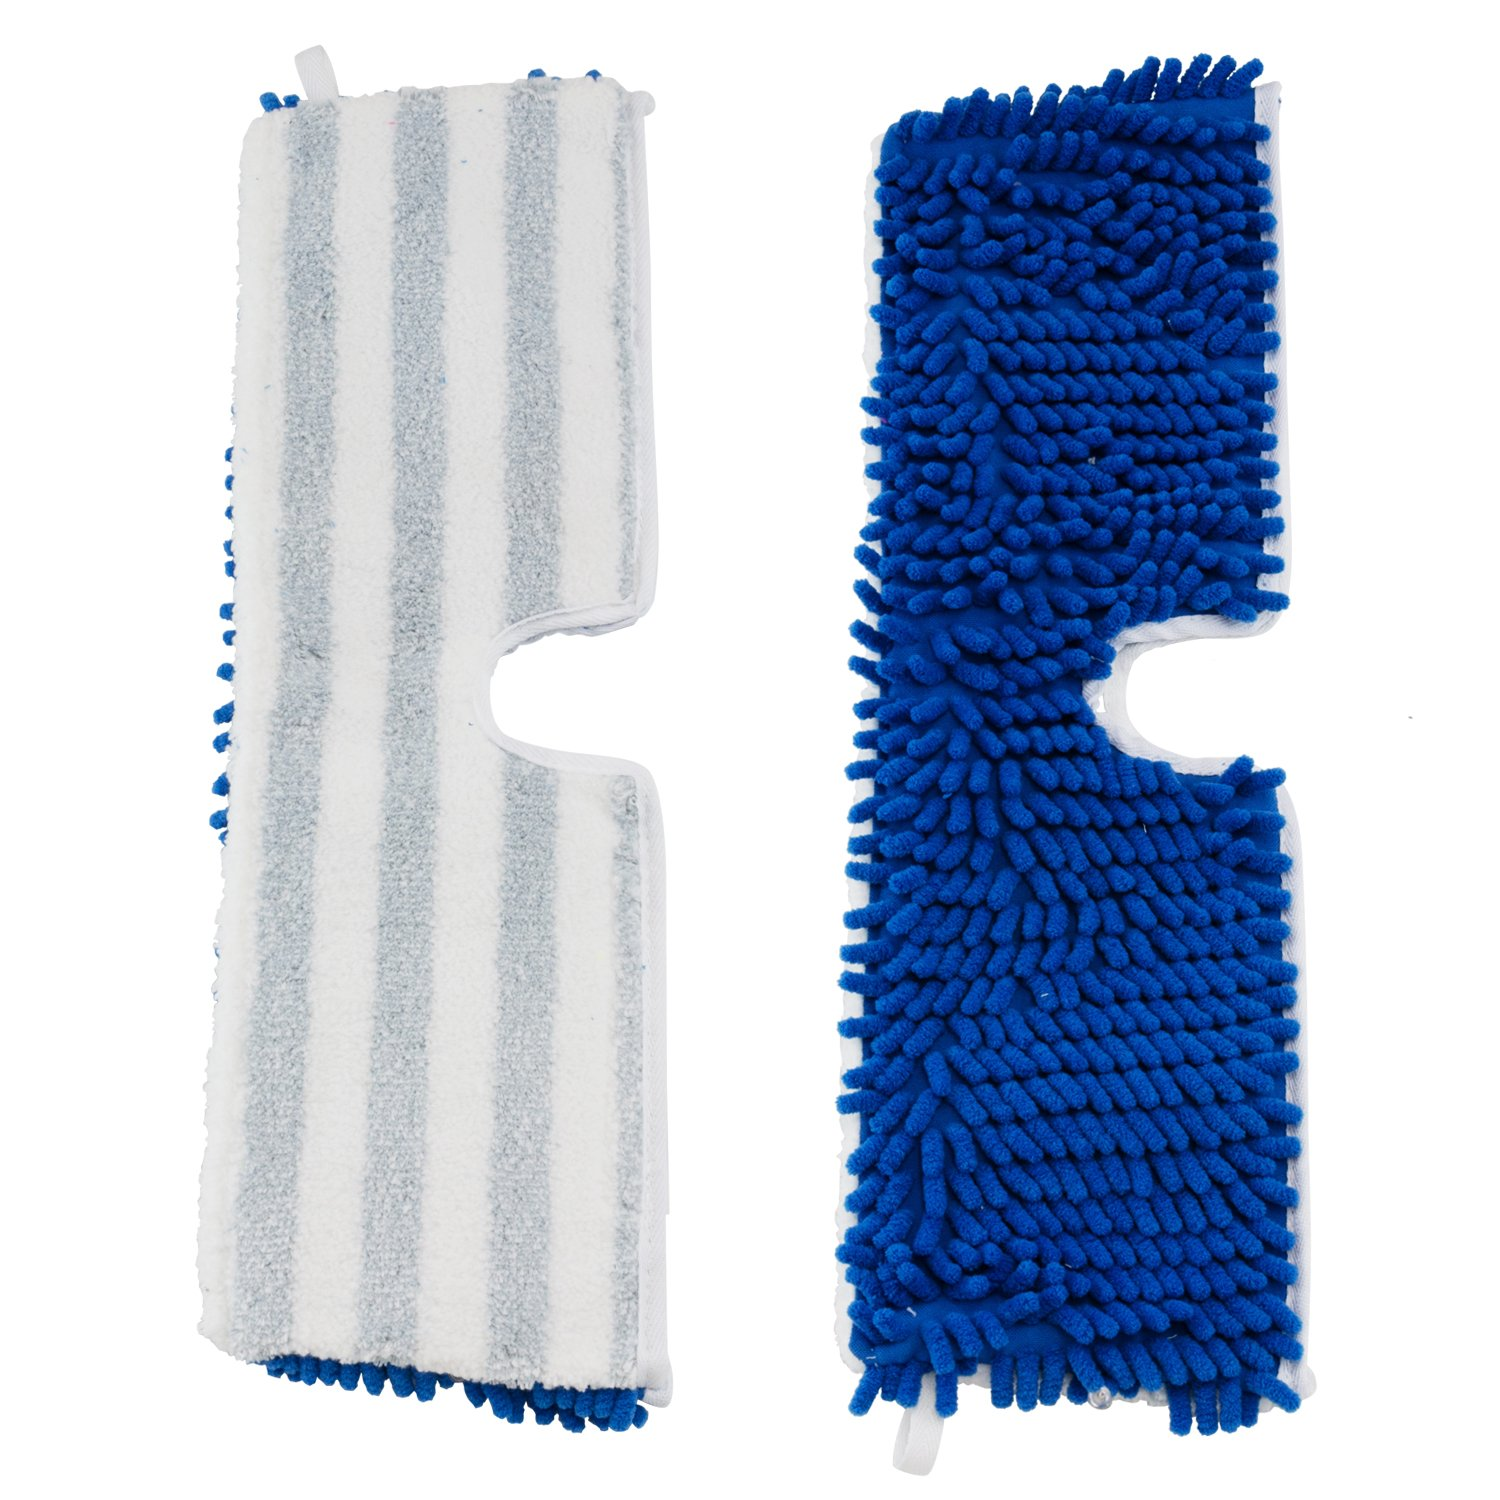 Houseables Flip Mop Refills, Replacement Pads, 3 Pack, 18 inch, Dual-Action Microfiber Head Floor Mops, Dry/Wet, Machine Washable, Double Sided Velcro Flat Sponge, 18'' L X 6'' W, All Surface Cleaning